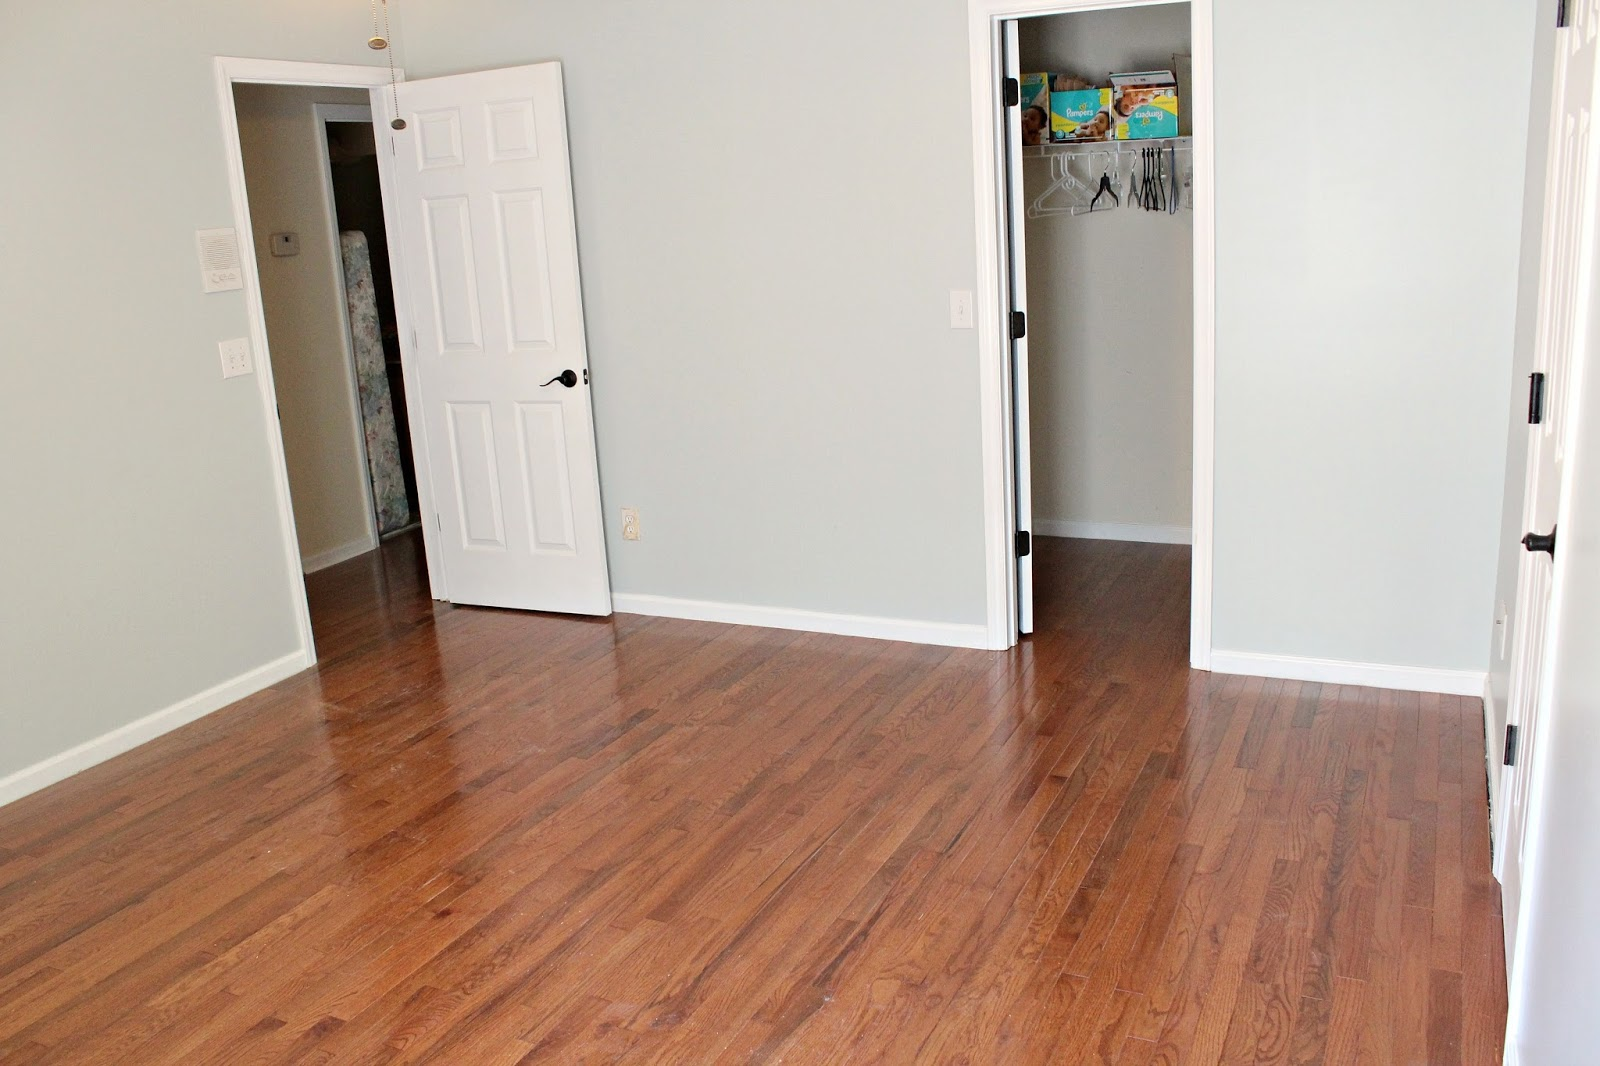 Hardwood Floors Upstairs: Part 5 (Guest Room Reveal)